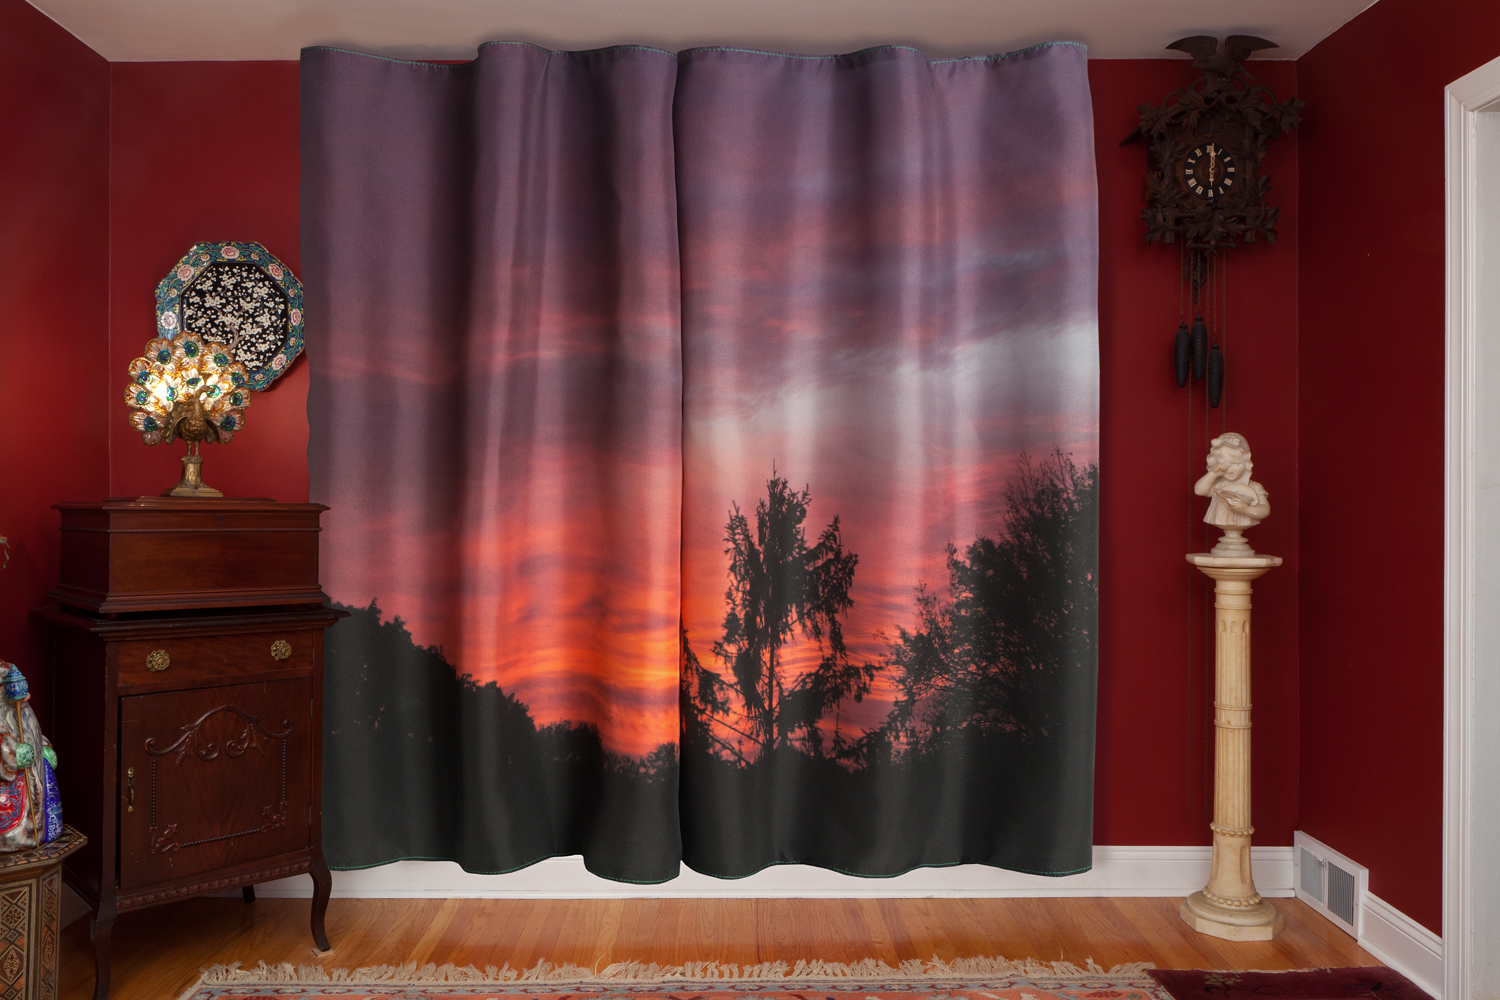 Sunset, 2012, archival pigment print on paper